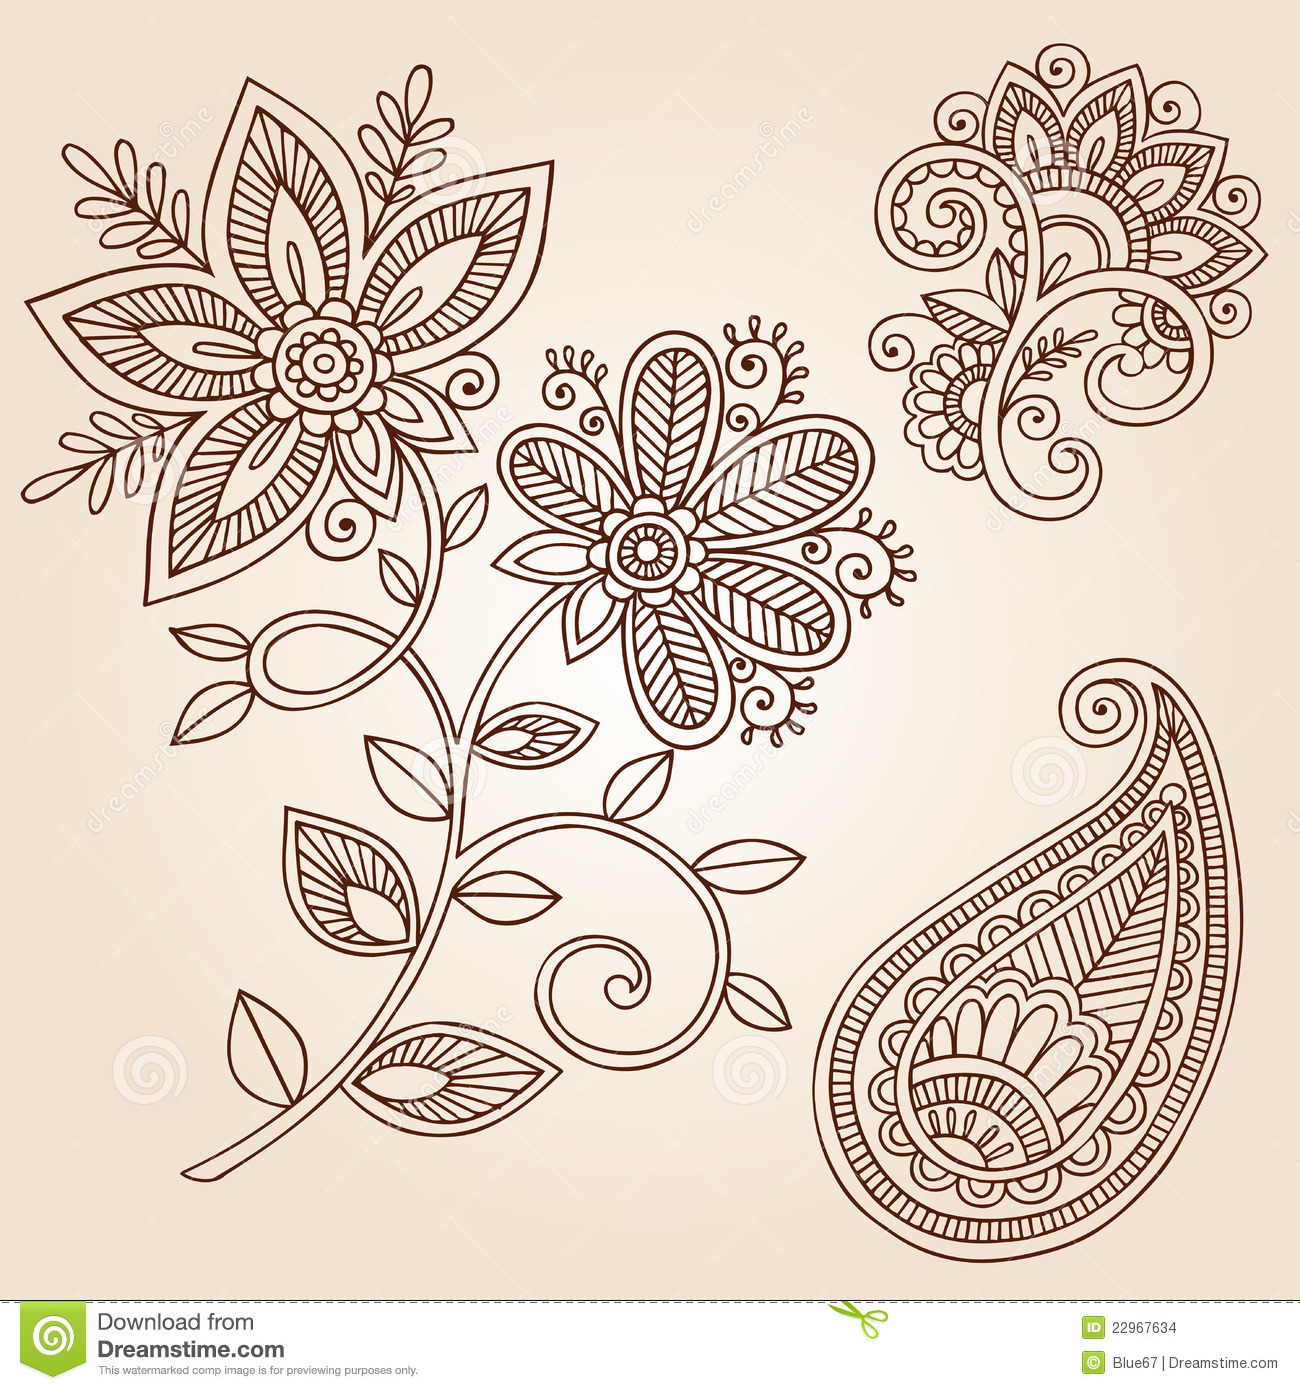 Henna Doodle Vector Design Elements Stock Illustrations 2 990